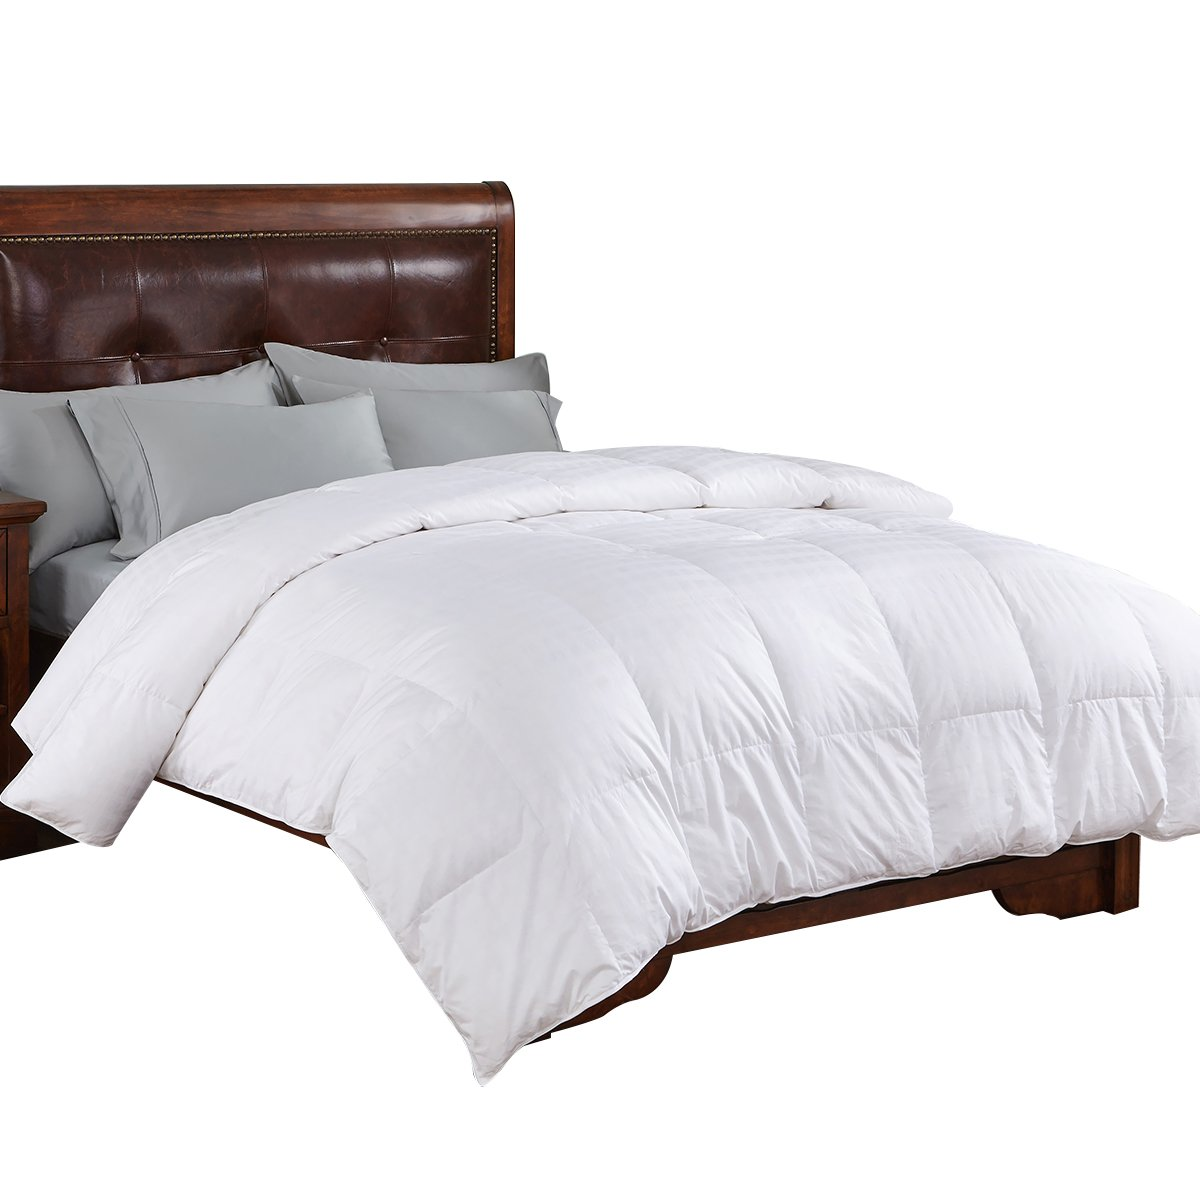 PEACE NEST All Season White Goose Down Comforter, 600 Fill Power Down Fill, 100% Cotton Shell 300 Thread Count, Full/Queen Size, White HE-DC-16013-F/Q